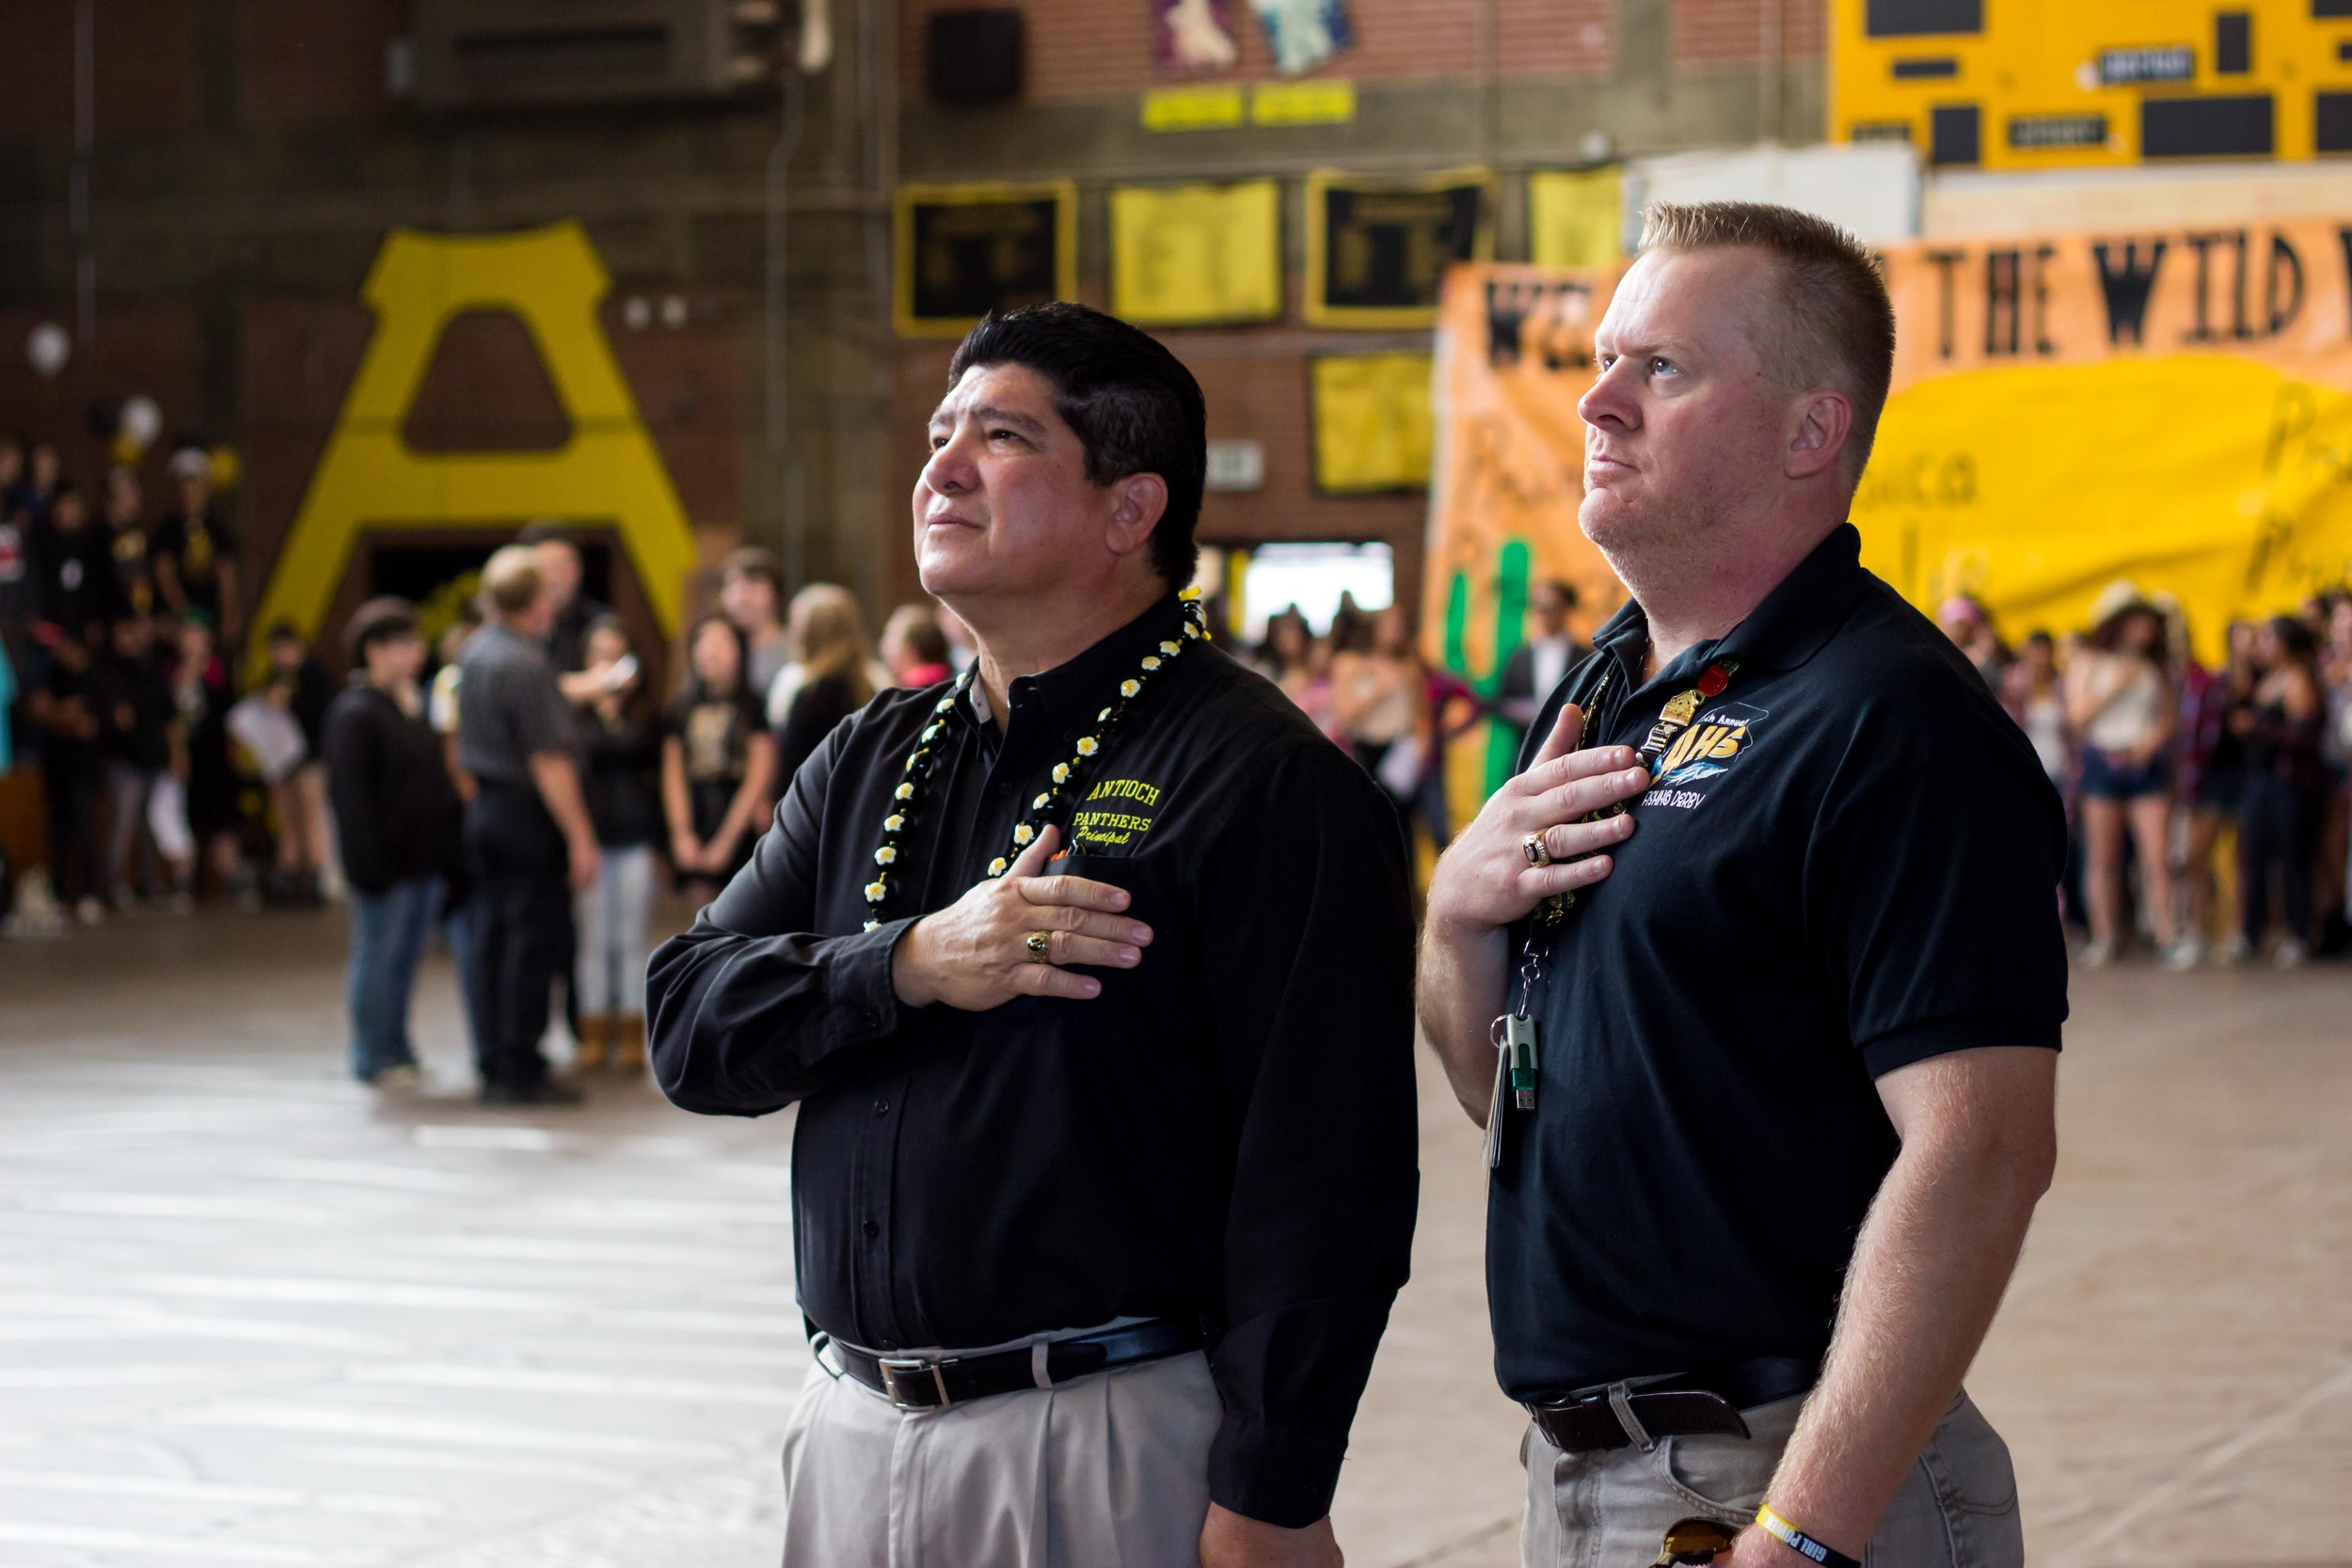 Mr. Mathews (right) with Principle Rocha (left) during the National Anthem at Antioch High's Class of 2015 Homecoming Rally.